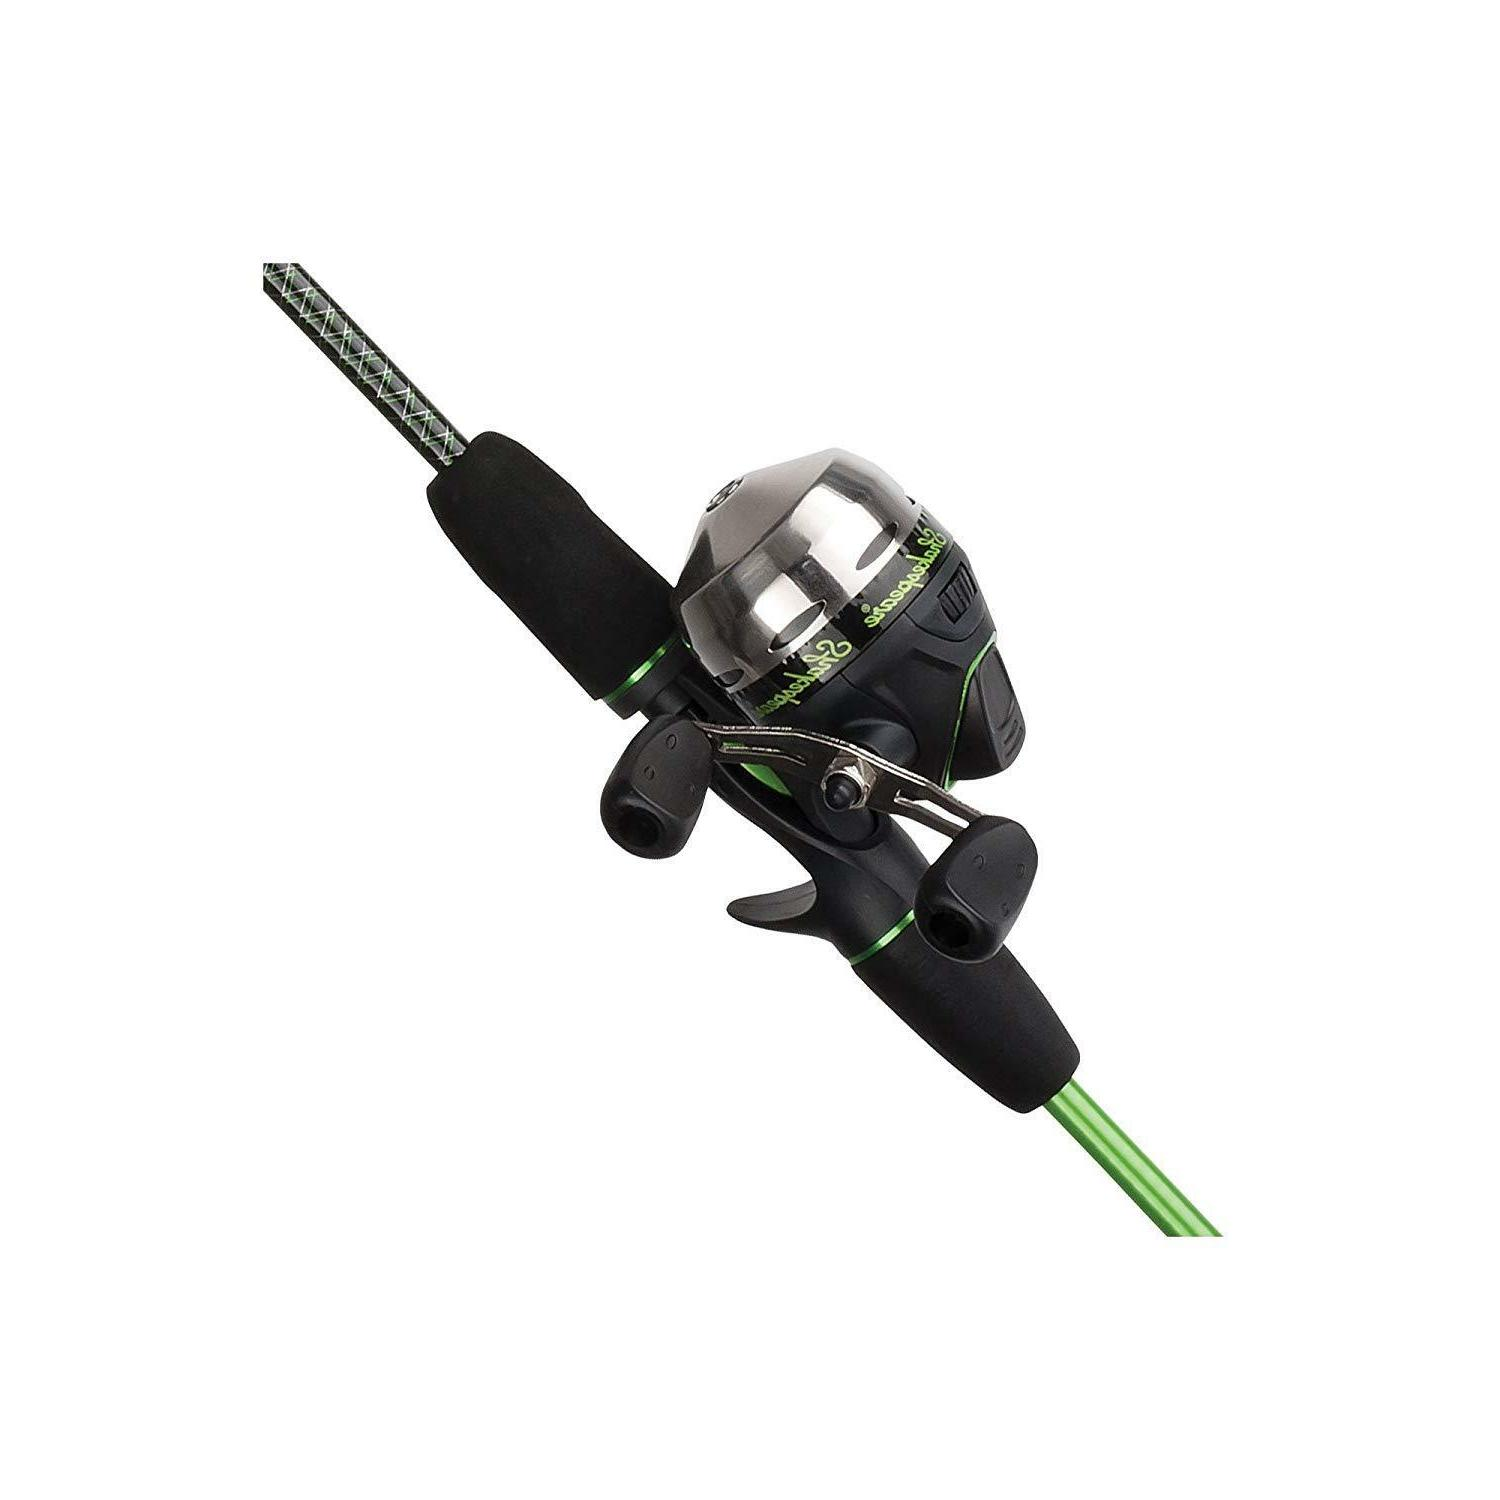 youth fishing rod and reel spincast beginners